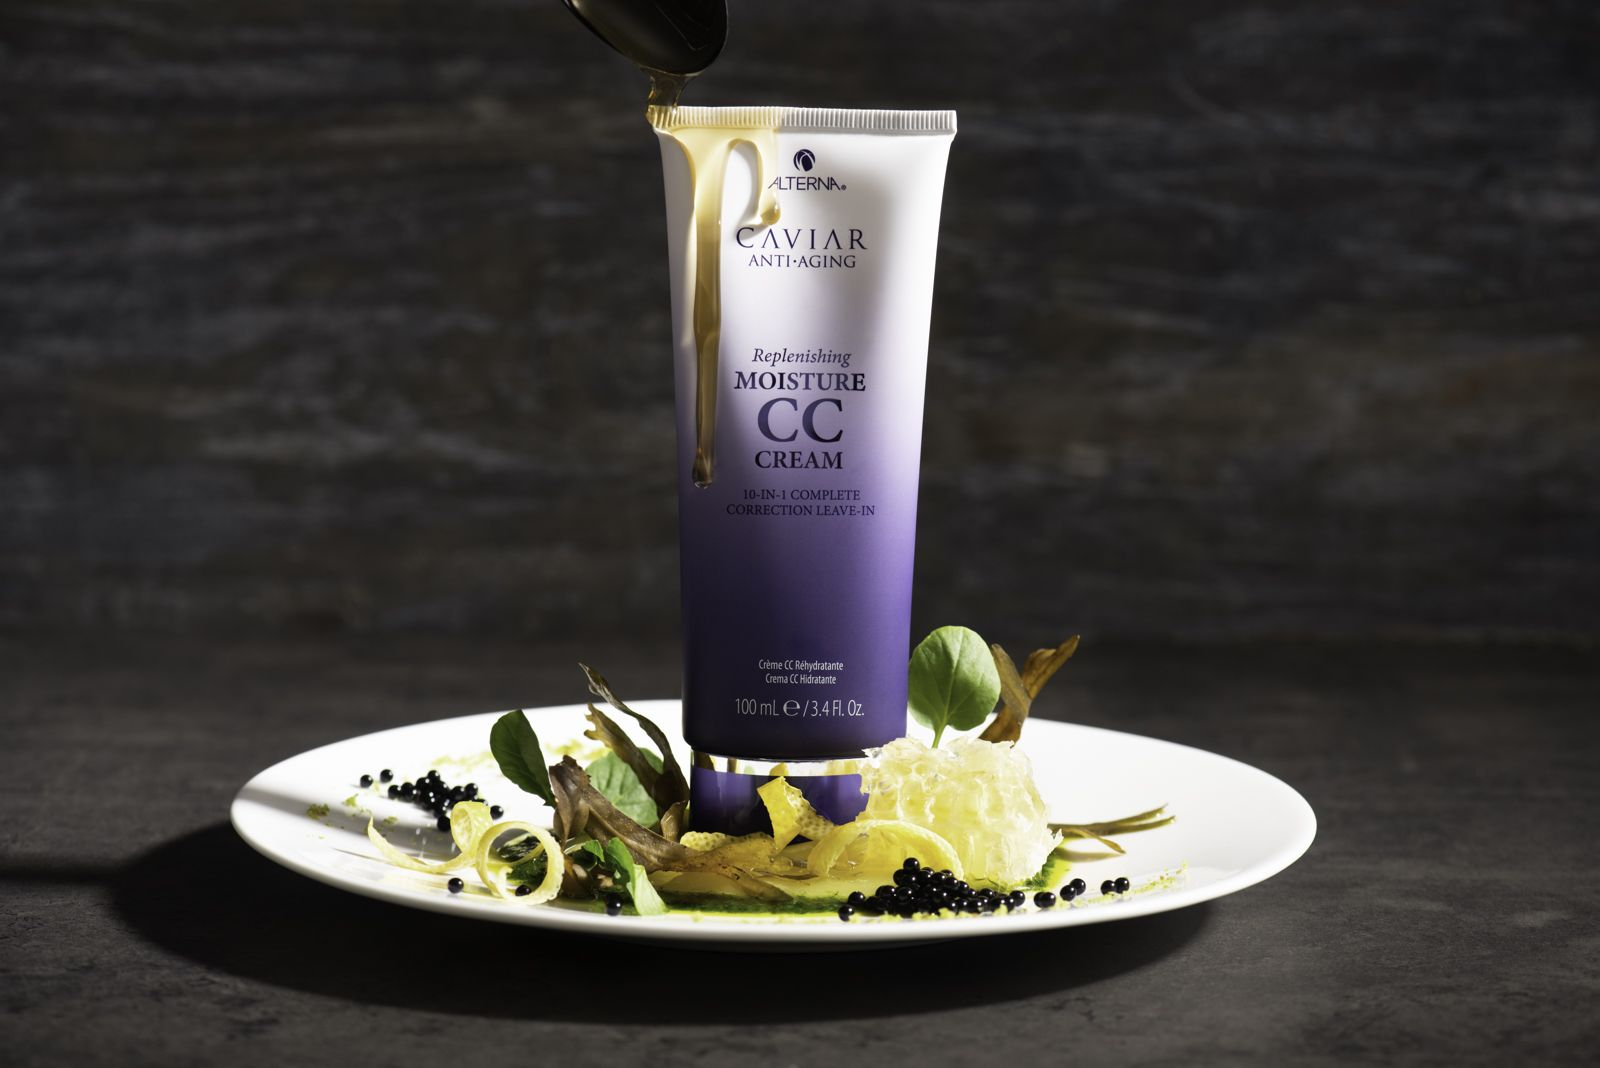 Pin by Alterna Haircare on Restage Caviar anti aging